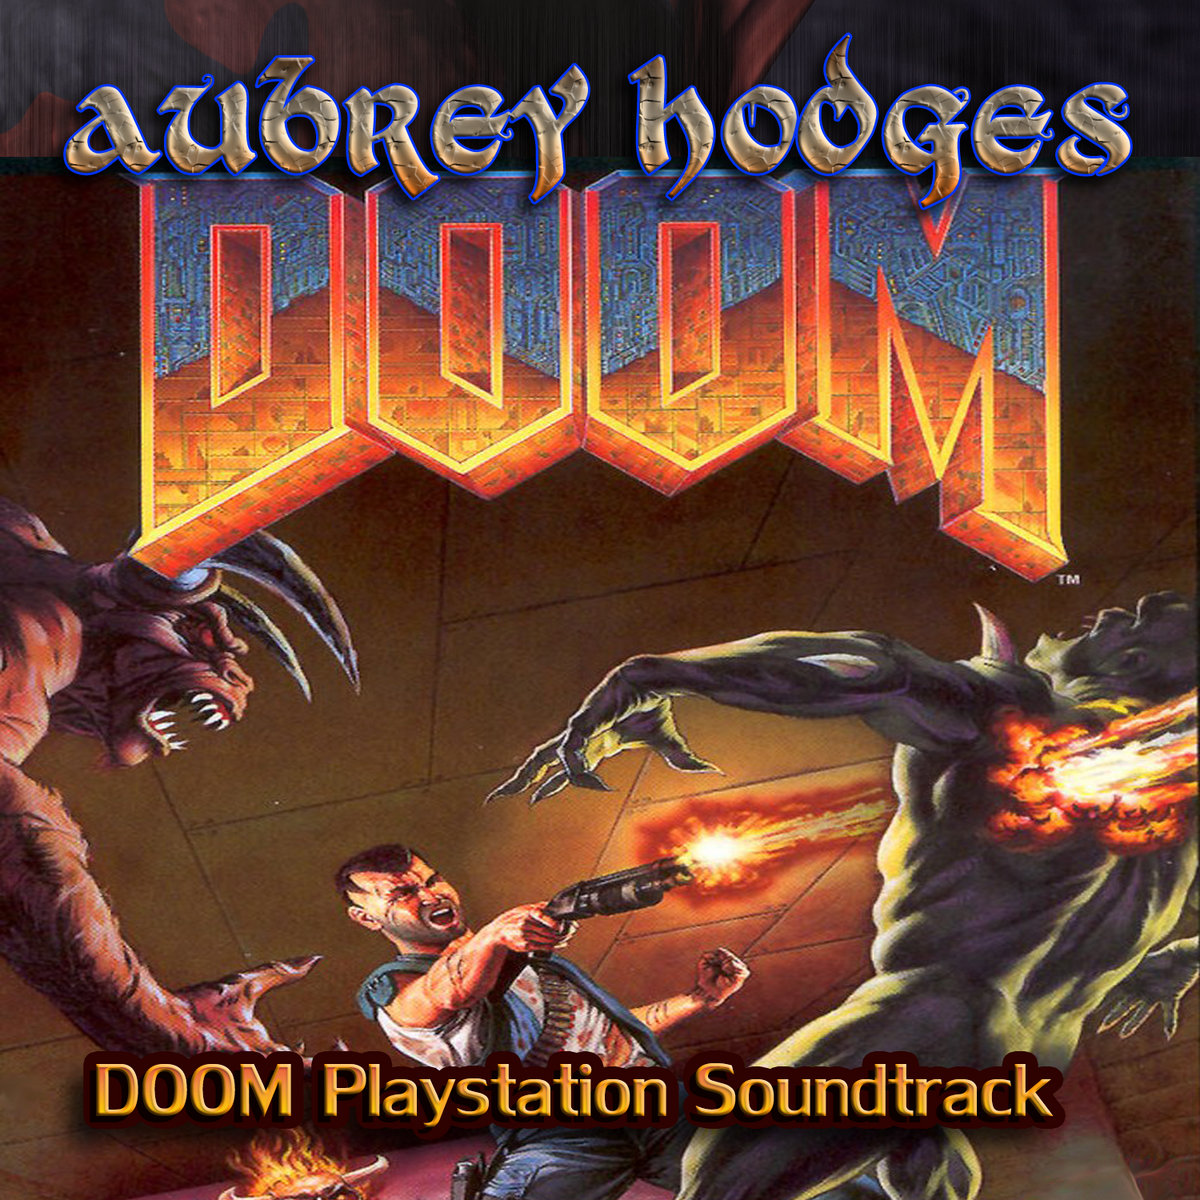 Doom Playstation: Official Soundtrack | Aubrey Hodges